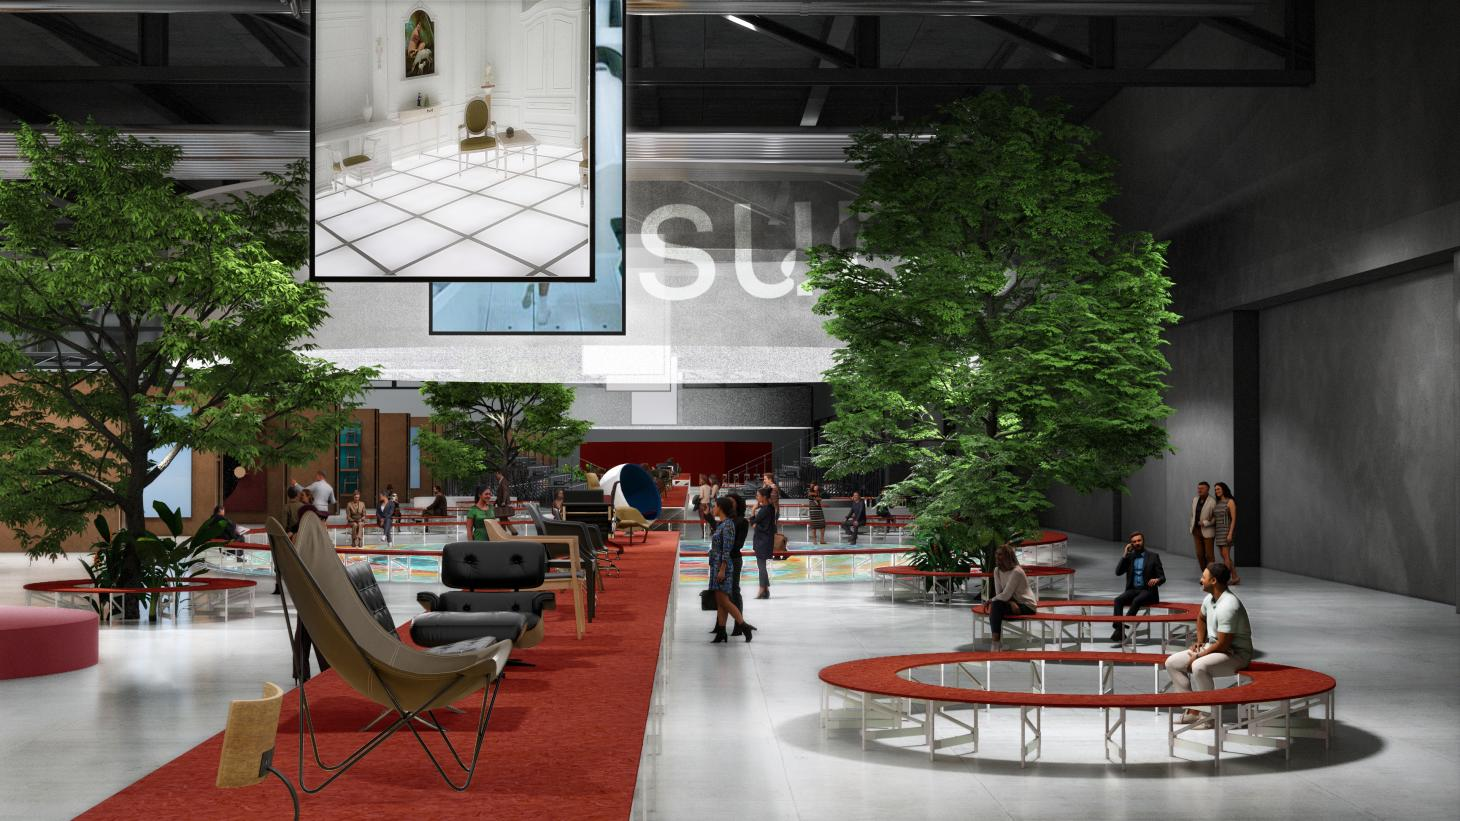 A render showing Supersalone, the Salone del Mobile 2021 concept led by Stefano Boeri Salone del Mobile 2021 - Discover Milan Design Week 2021